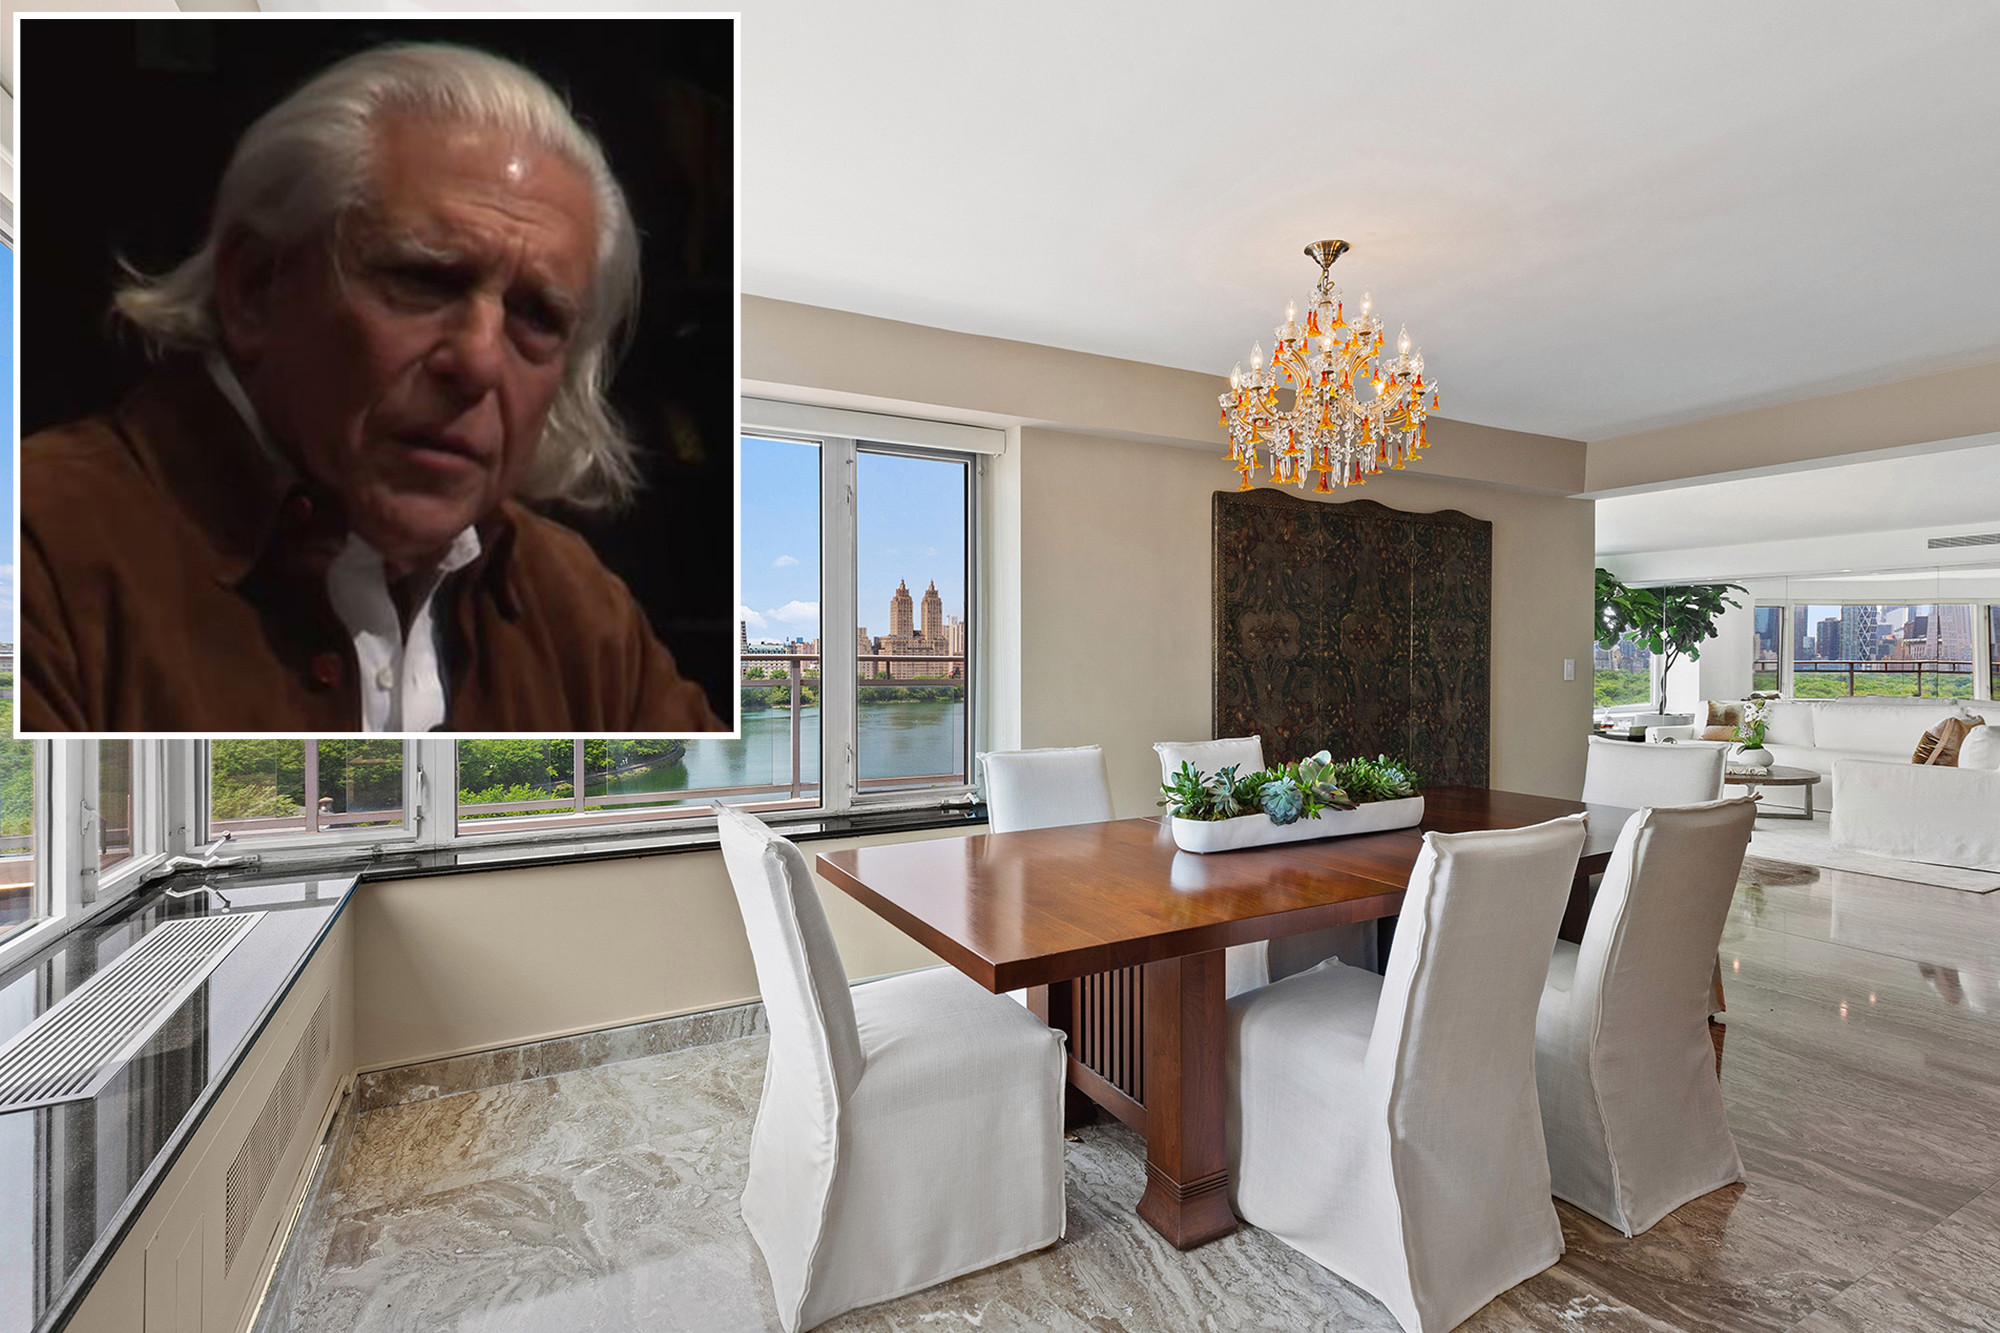 An inset of Donald Schupakover his dining room.